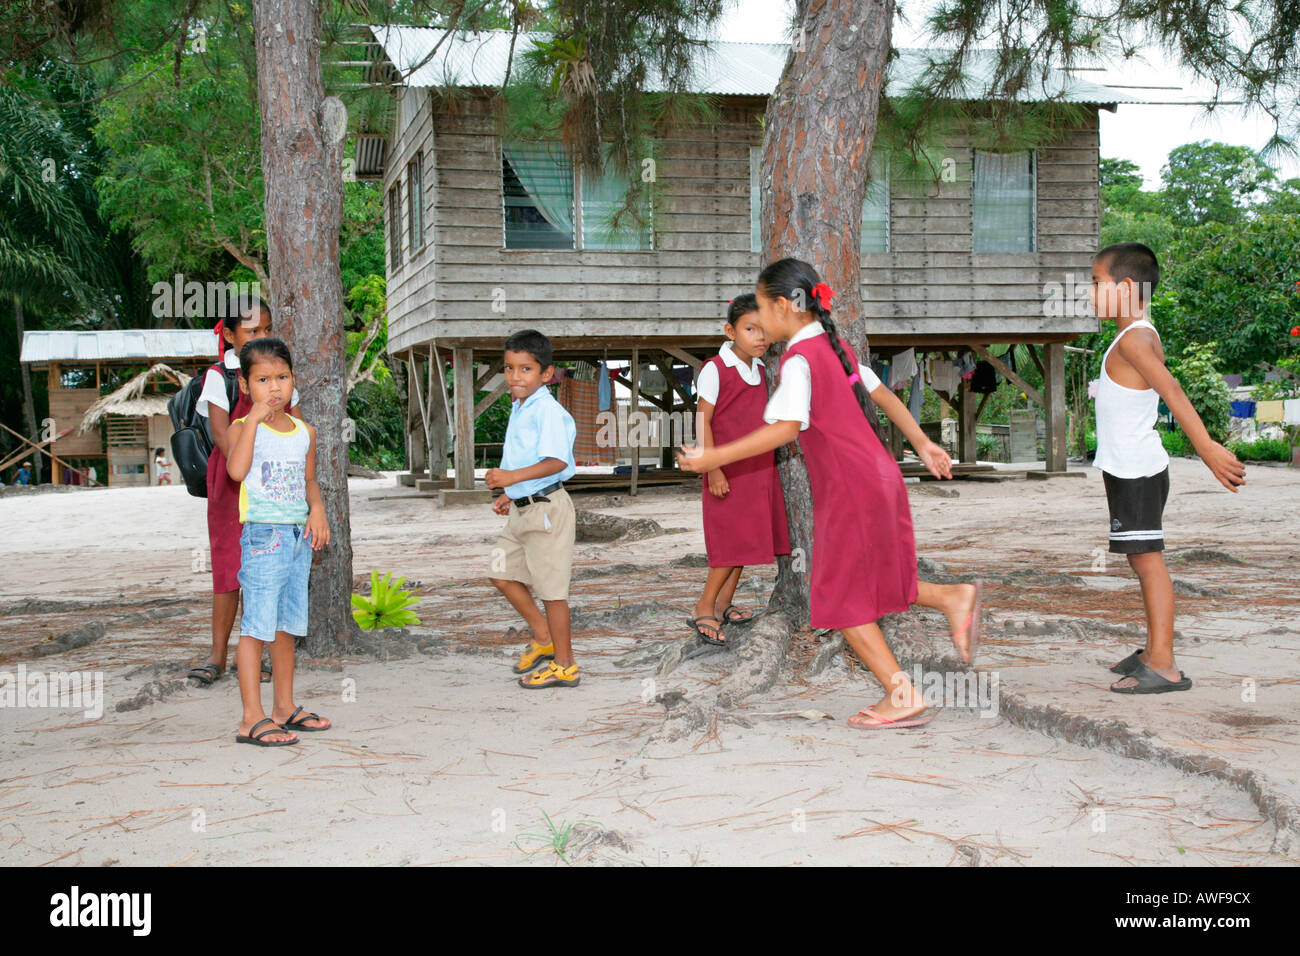 Native day in Suriname(Indians)   Indian arowak Suriname ...   Arawak Indians Suriname South America